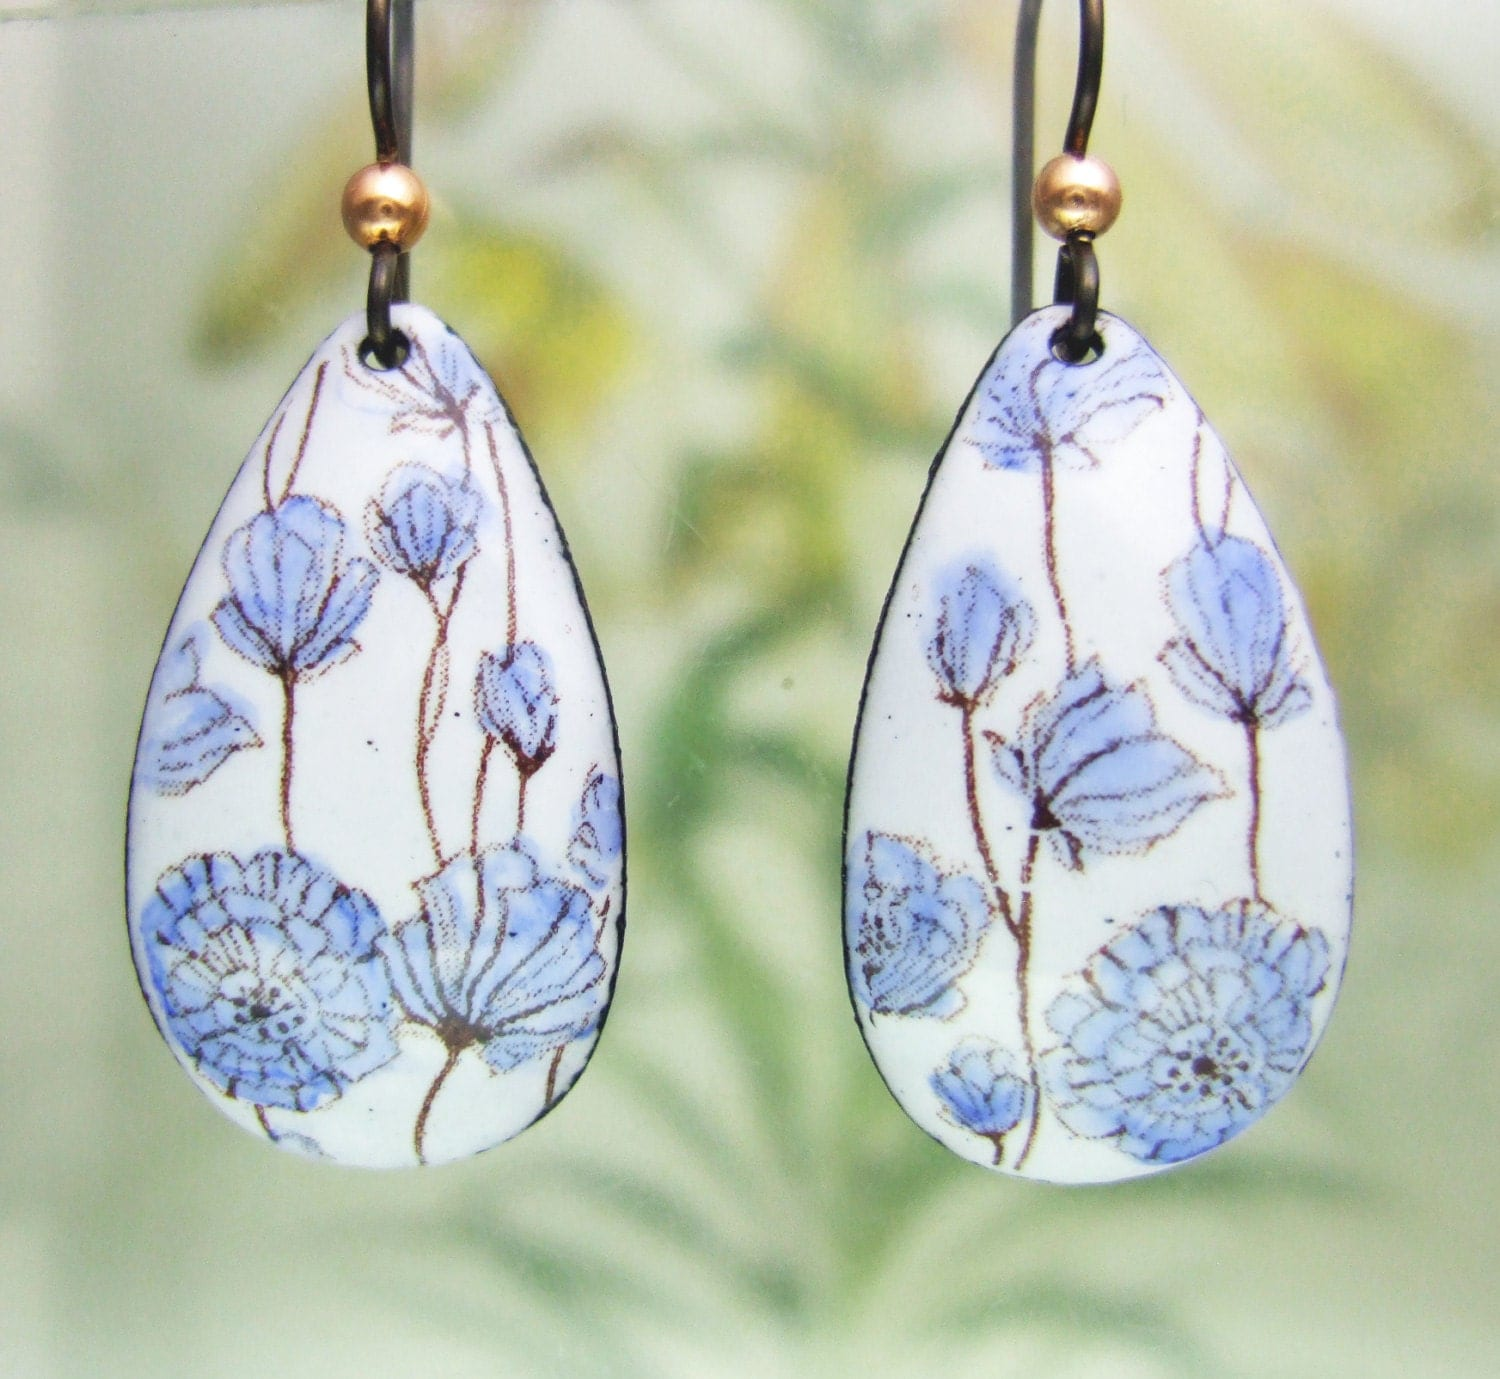 Hand Crafted Enamel House Necklace Pendant Copper Home: Delft Blue Floral Enamel Earrings Copper Enamel Jewelry